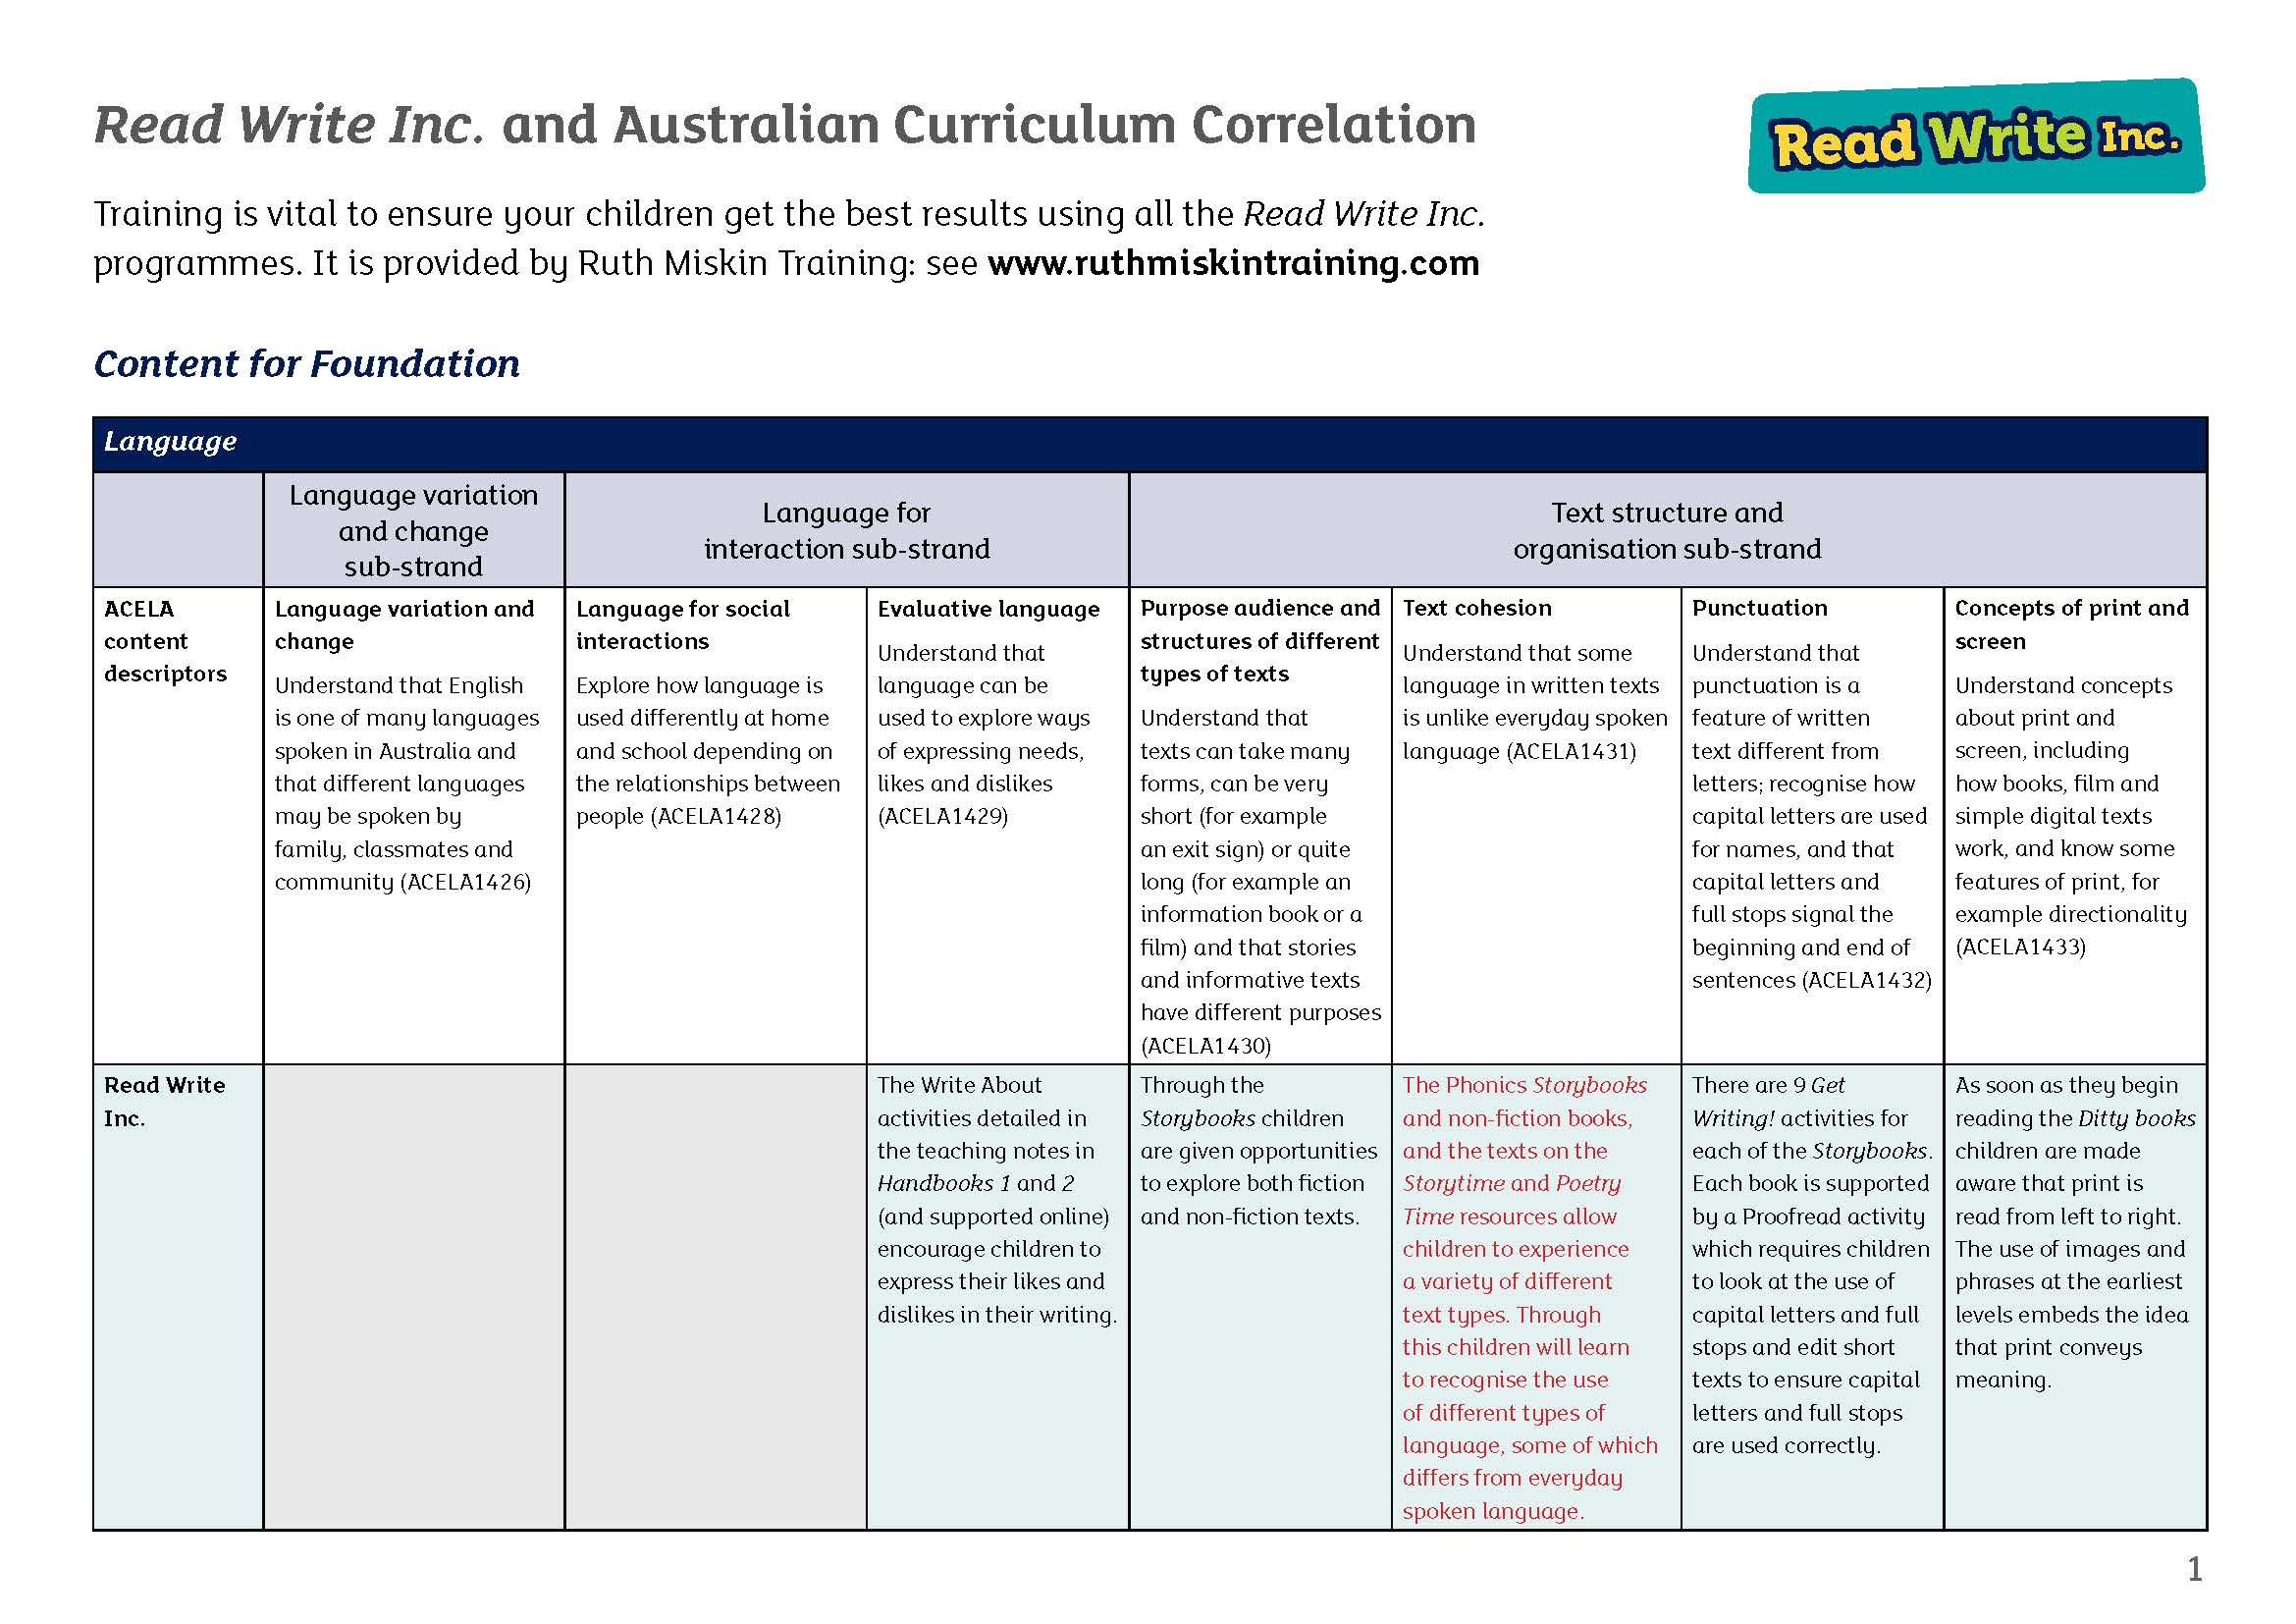 Read Write Inc. Australian Curriculum Match (PDF)